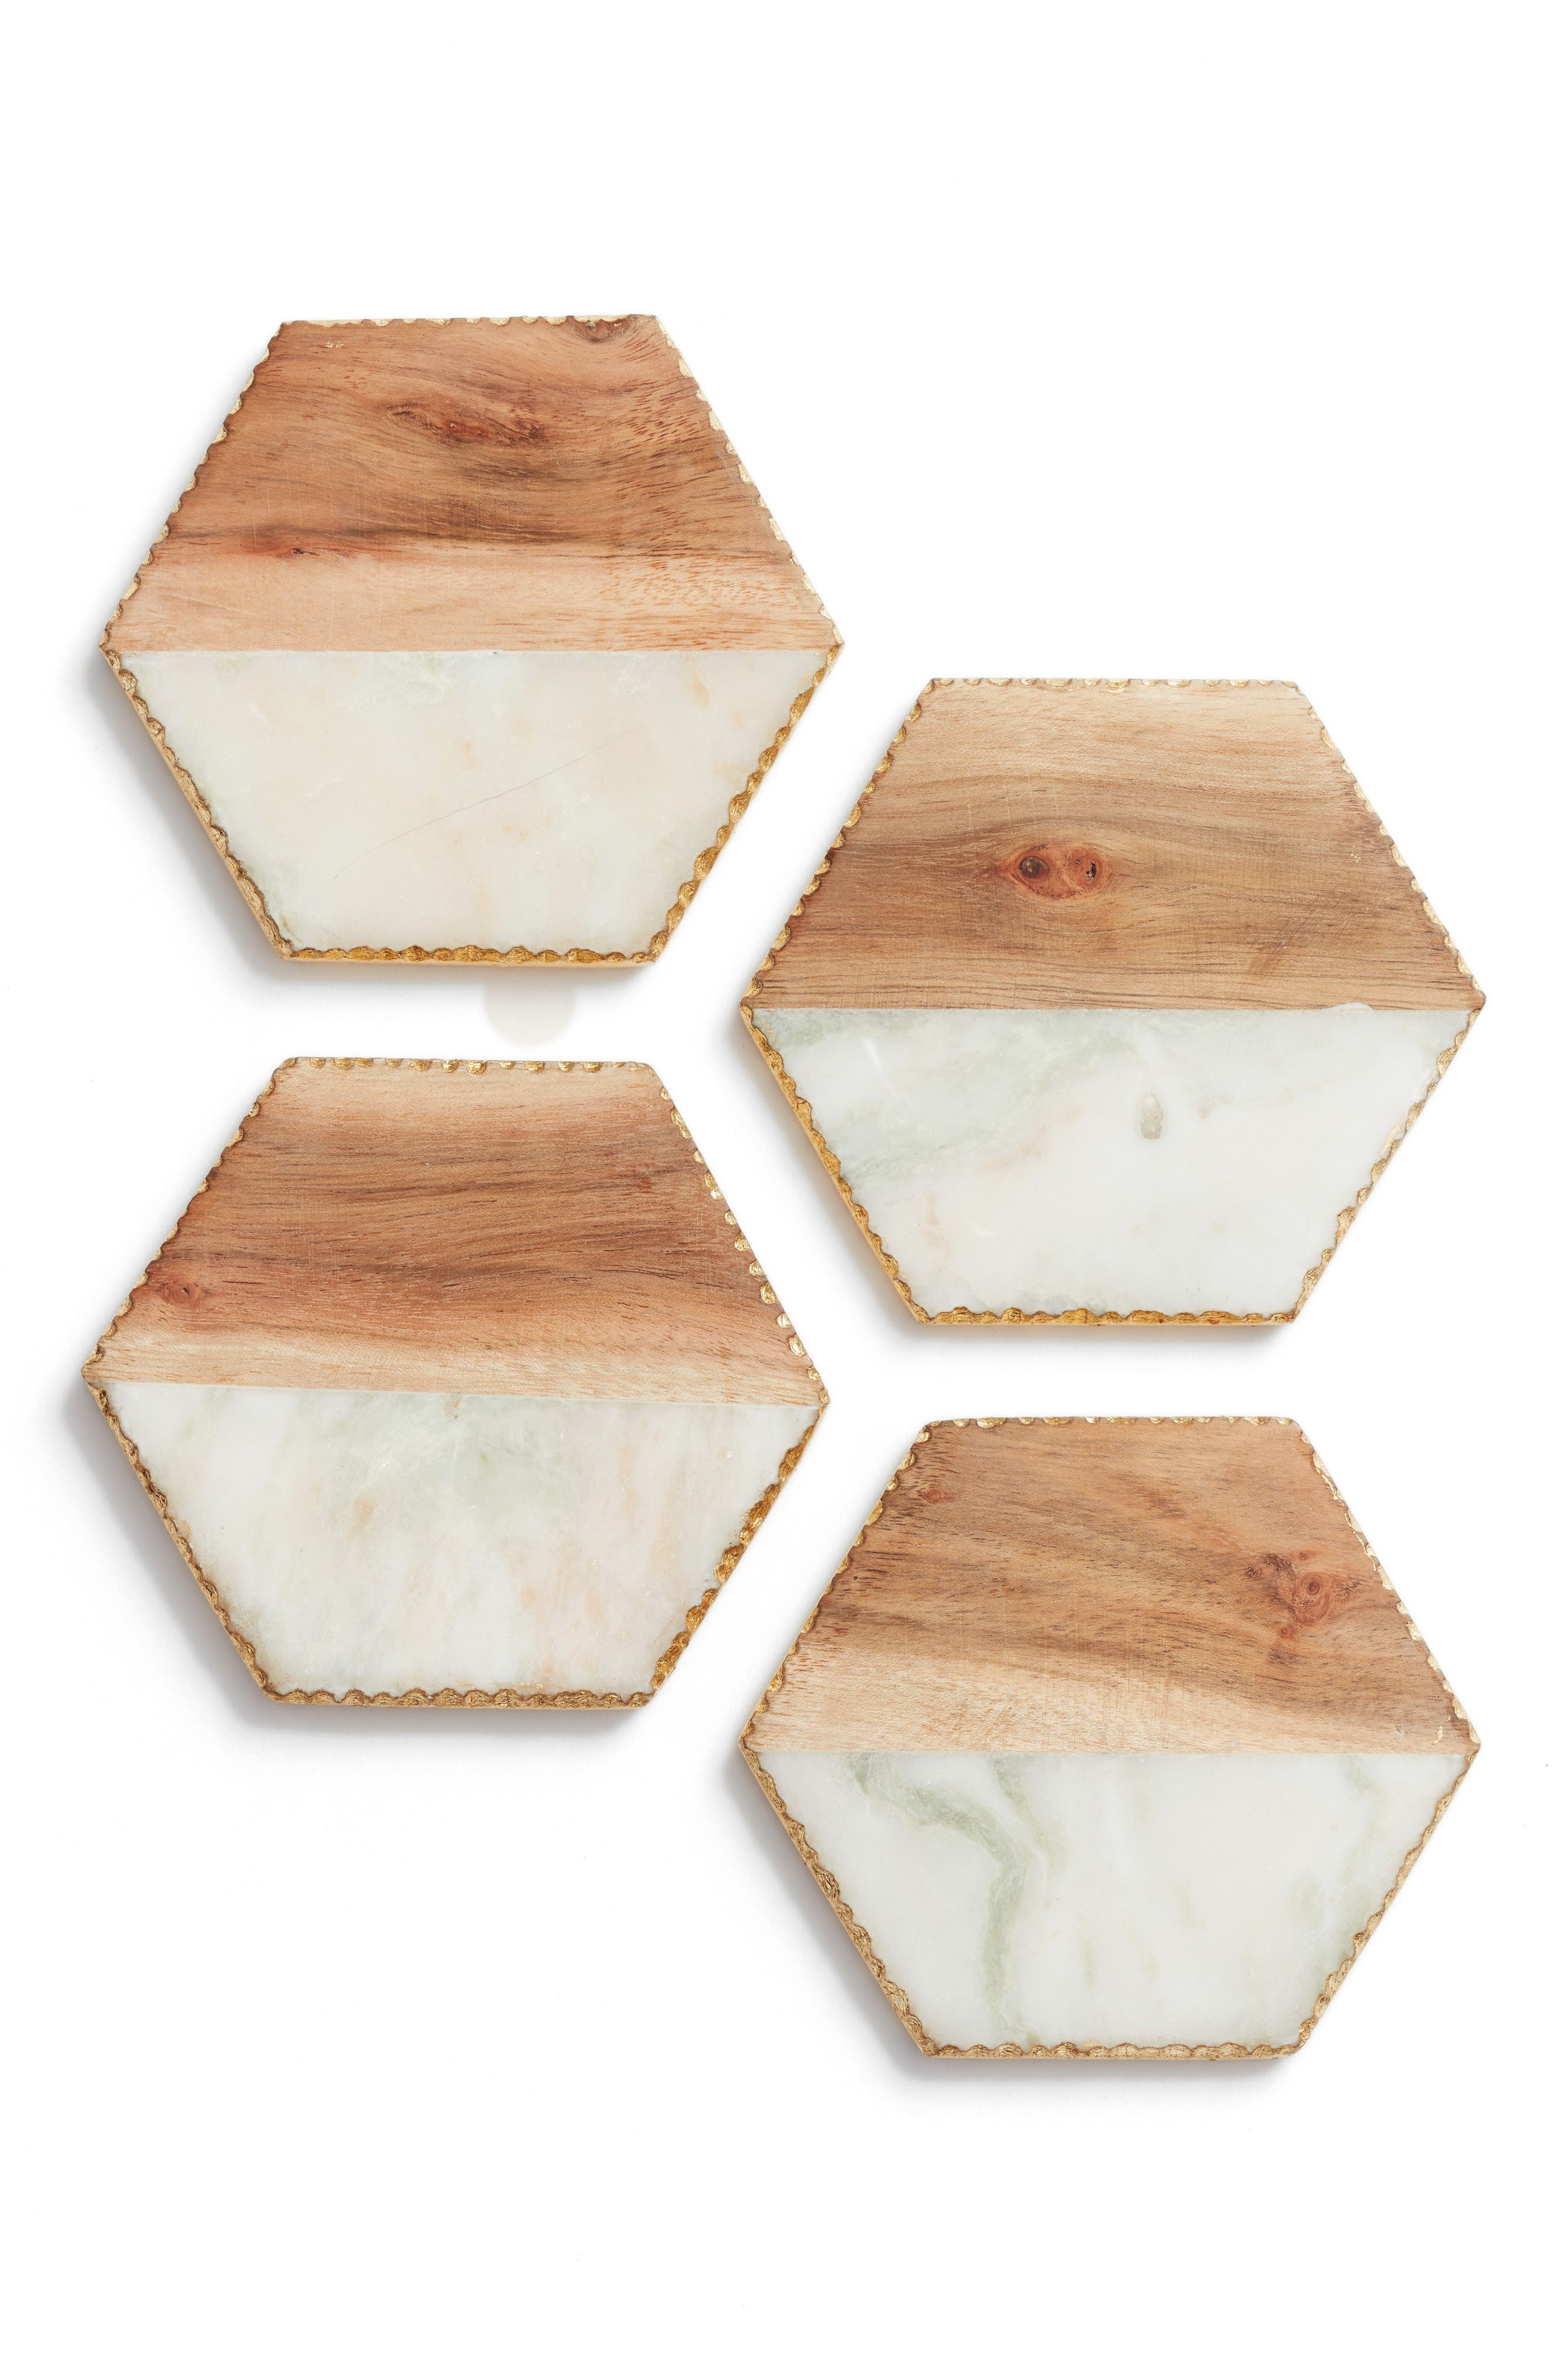 Nordstrom at Home Set of 4 Wood & Marble Coasters